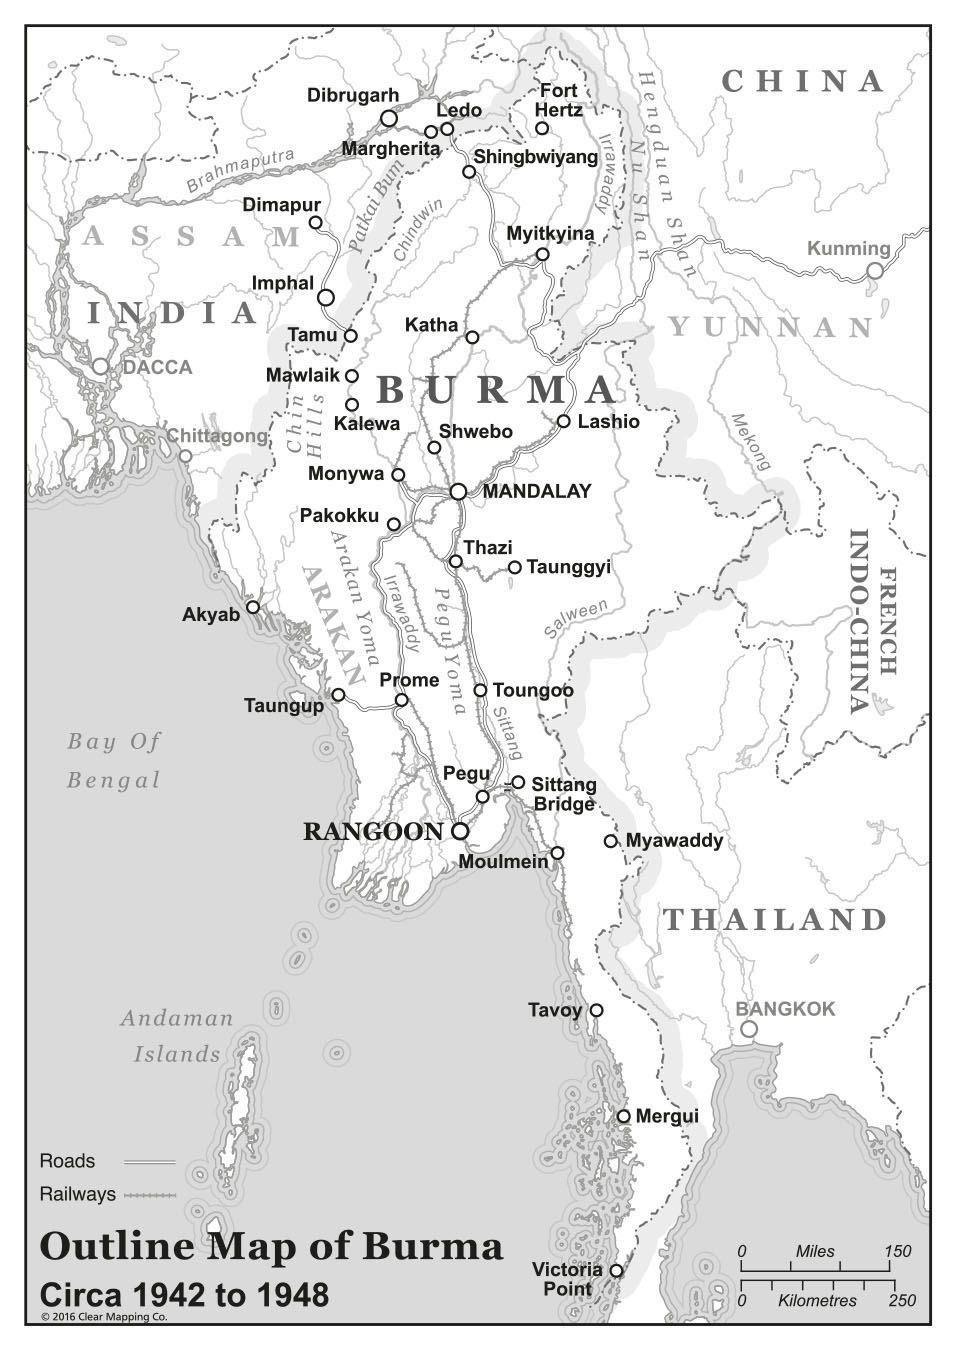 Burma Maps for publication